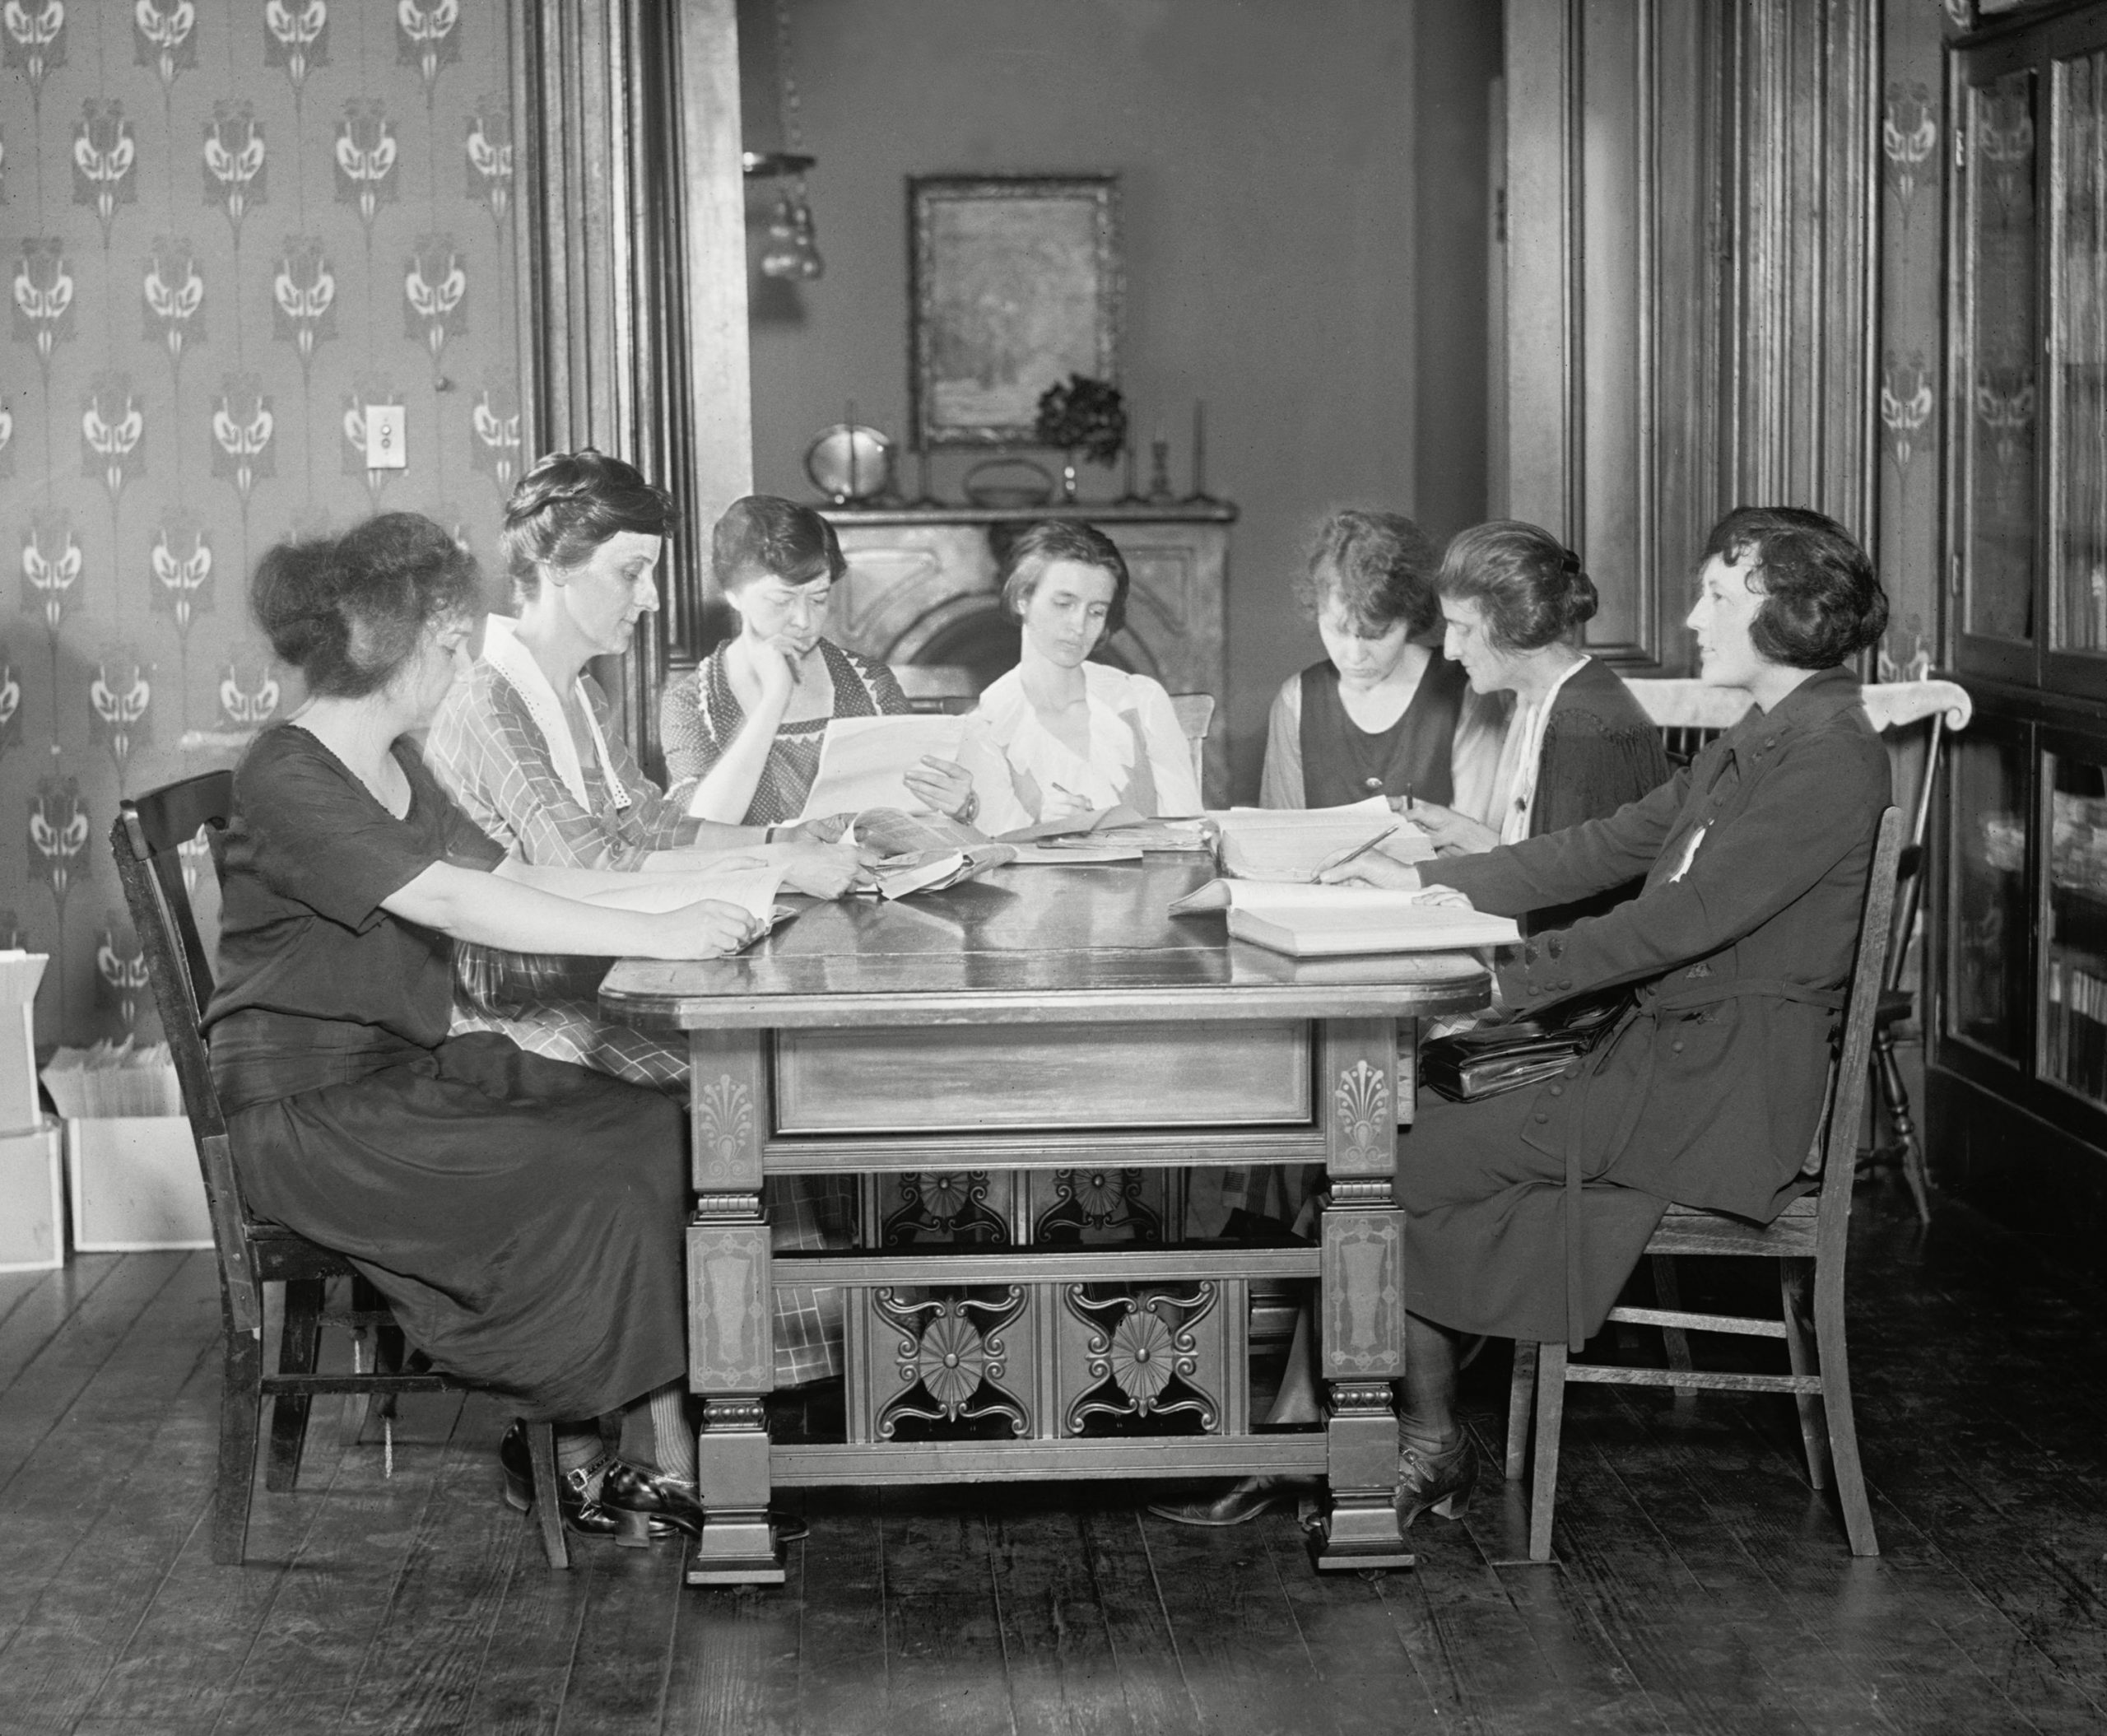 Women of the National Womens Party meeting in 1922